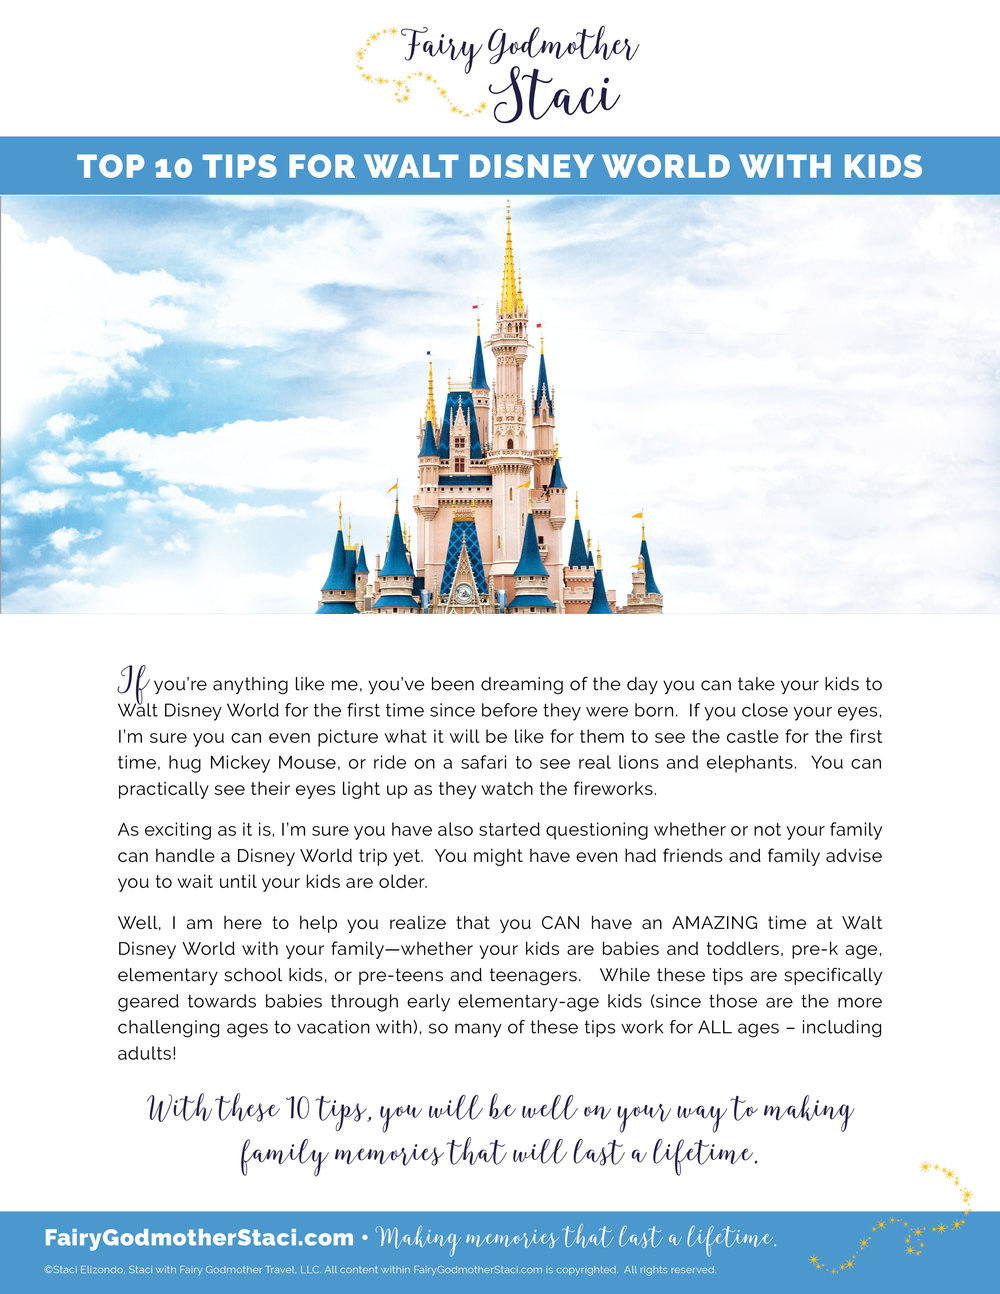 Top 10 Tips for Walt Disney World with Kids.jpg